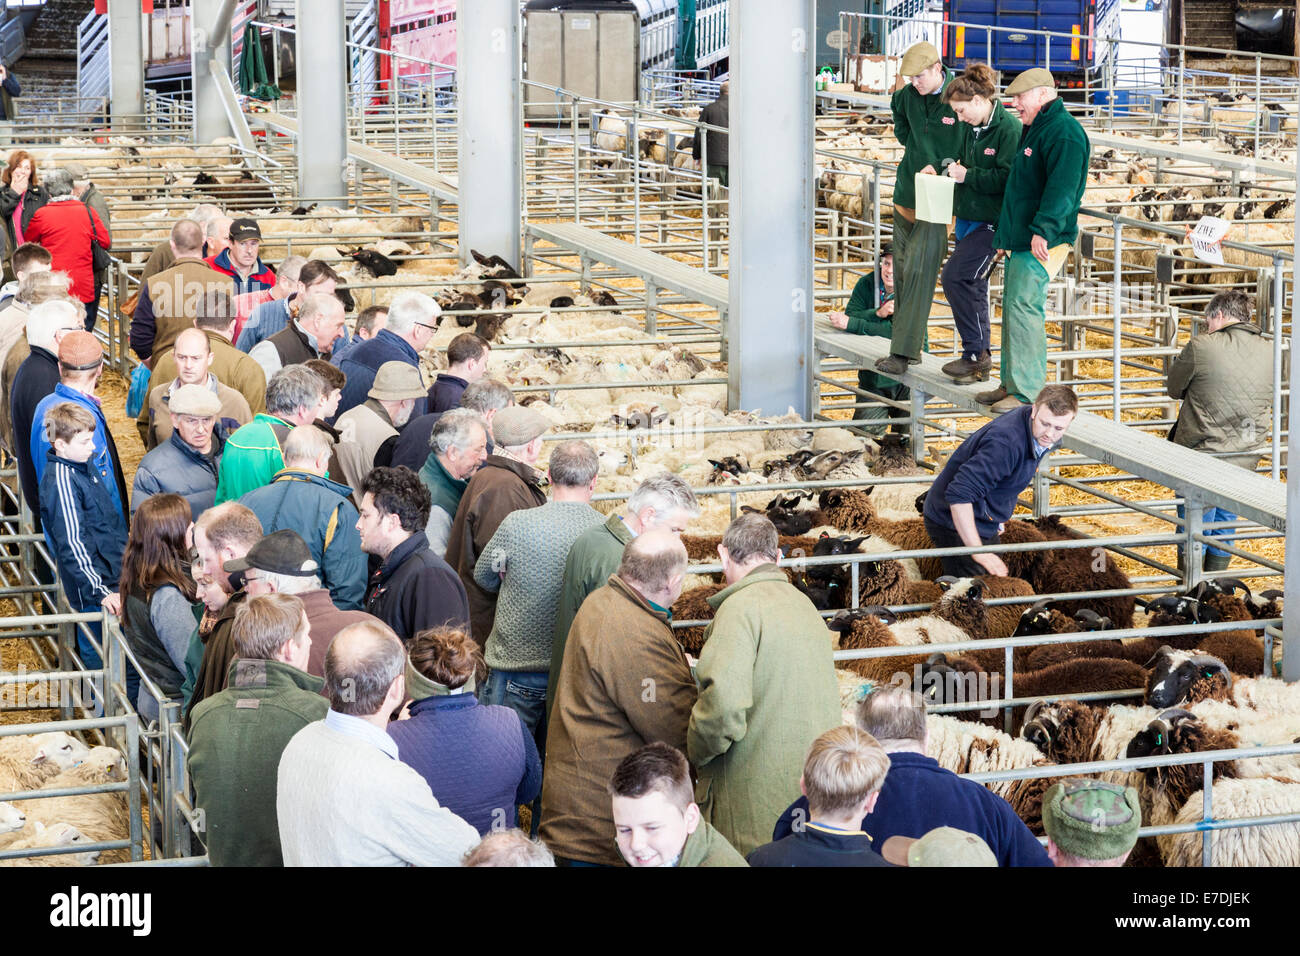 Farmers and auctioneer at the sheep auction at Melton Mowbray Market, Leicestershire, England, UK - Stock Image